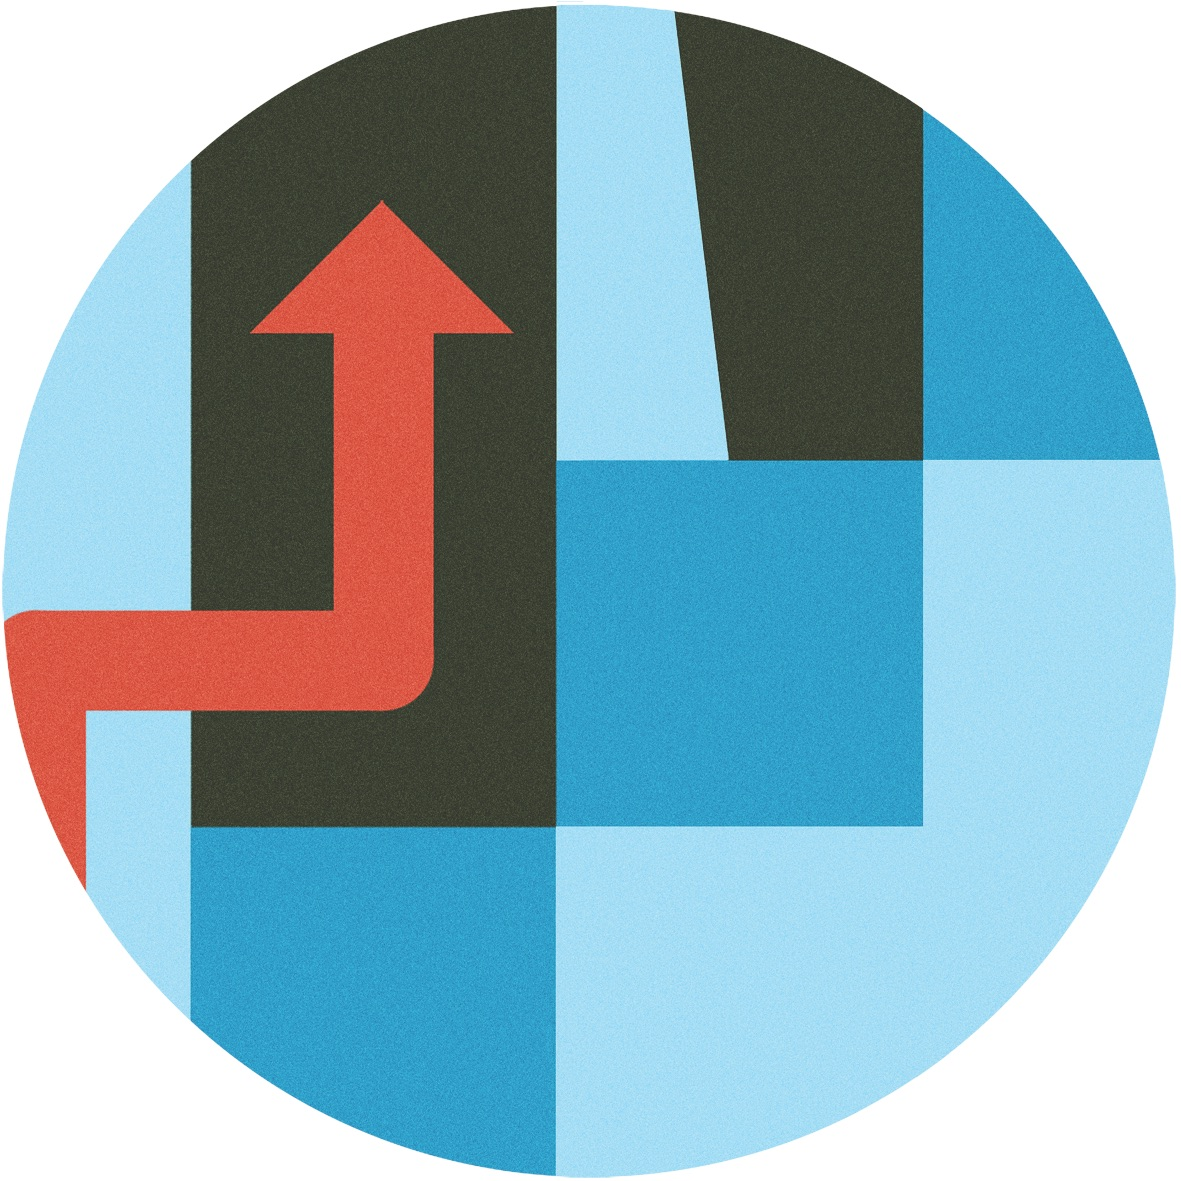 Arrow going up icon